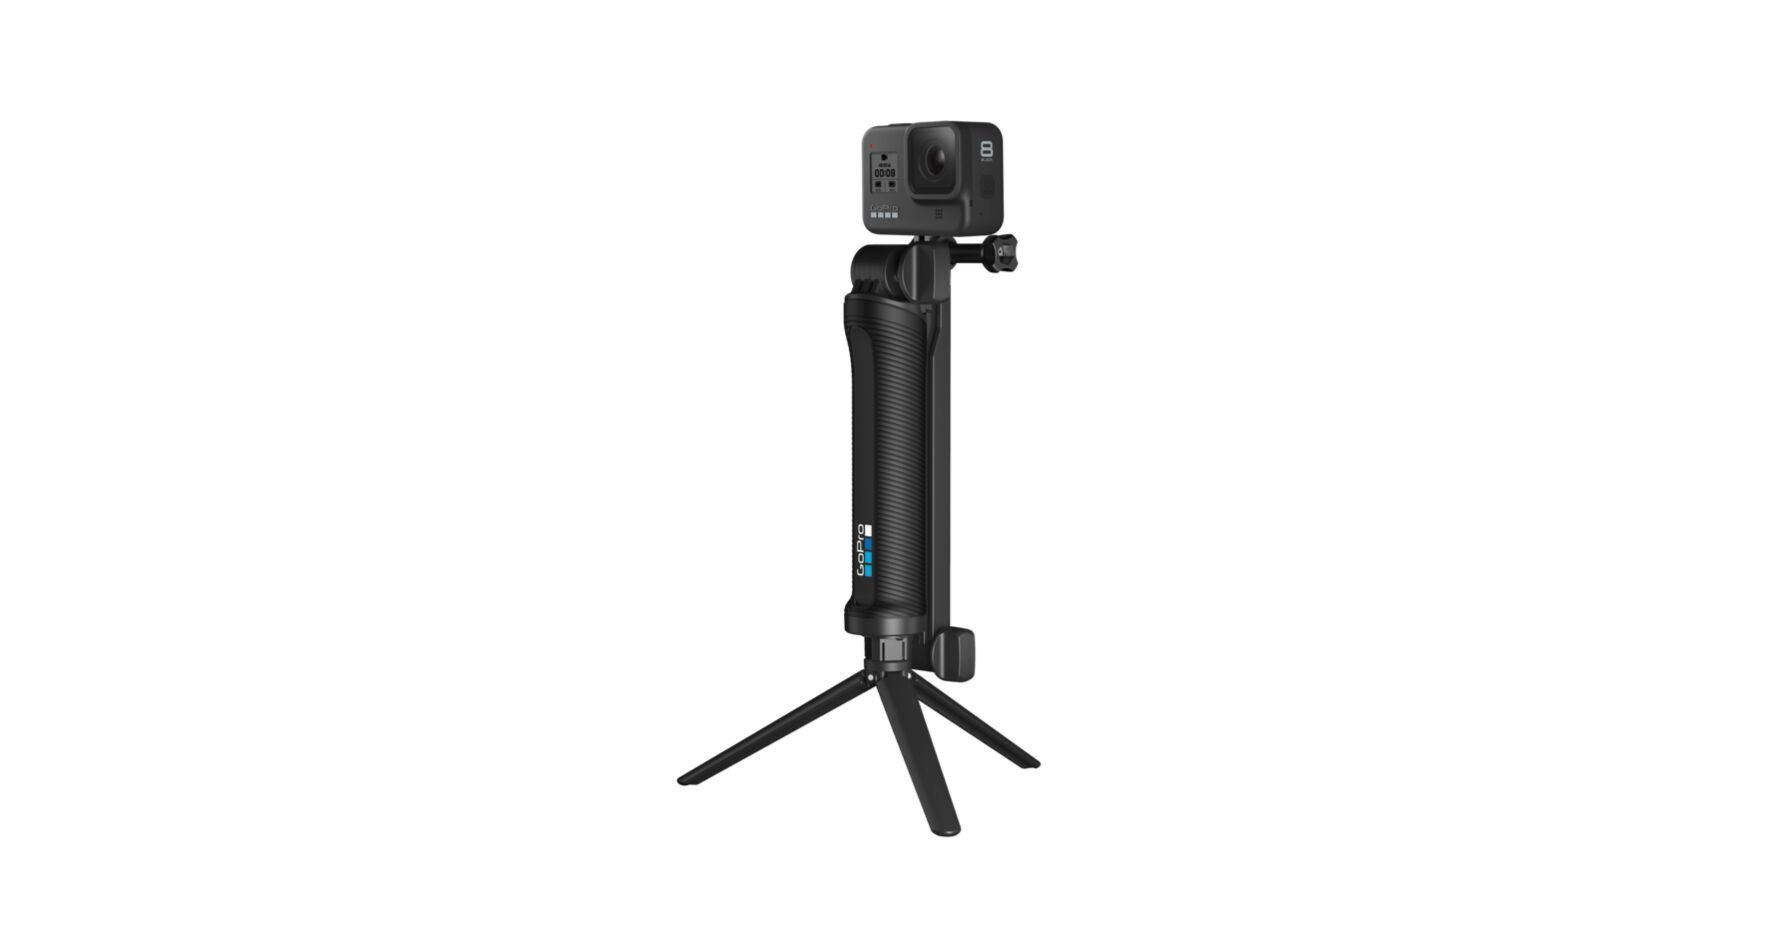 Picture of GoPro 3-Way Mount Grip / Arm / Tripod